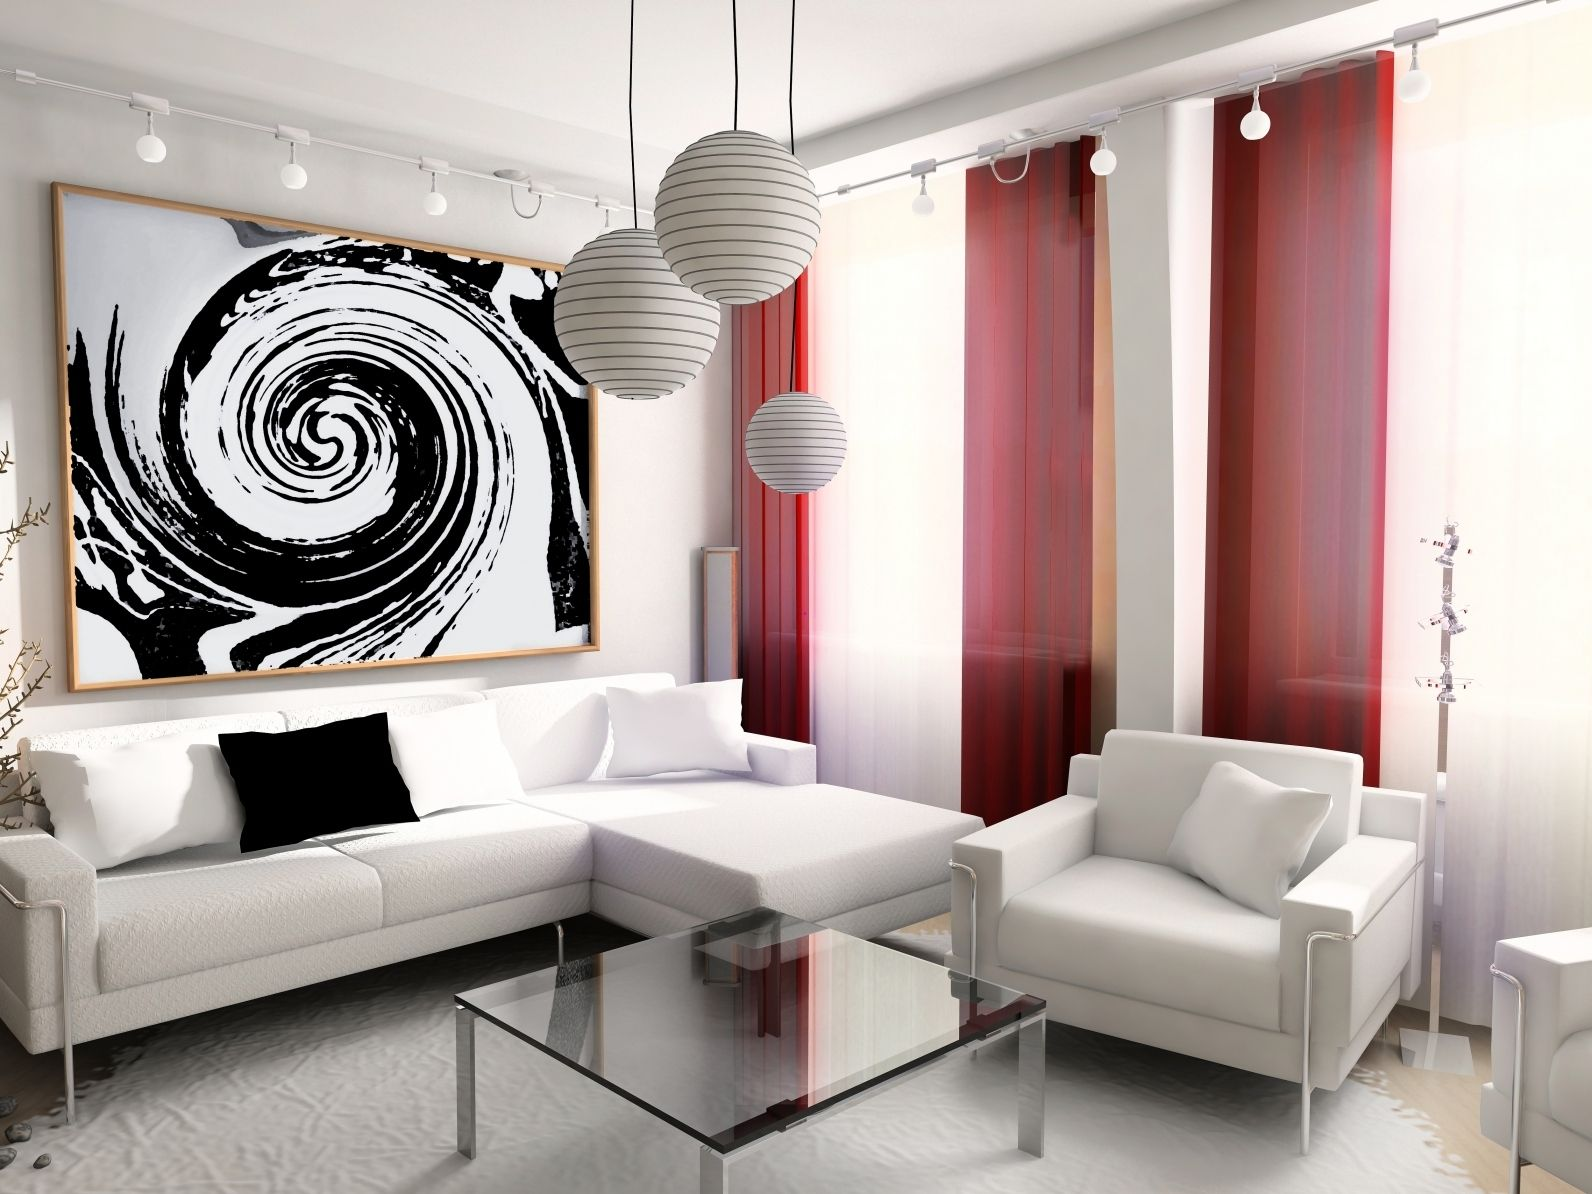 White living room wpops of black and red but need crisp white